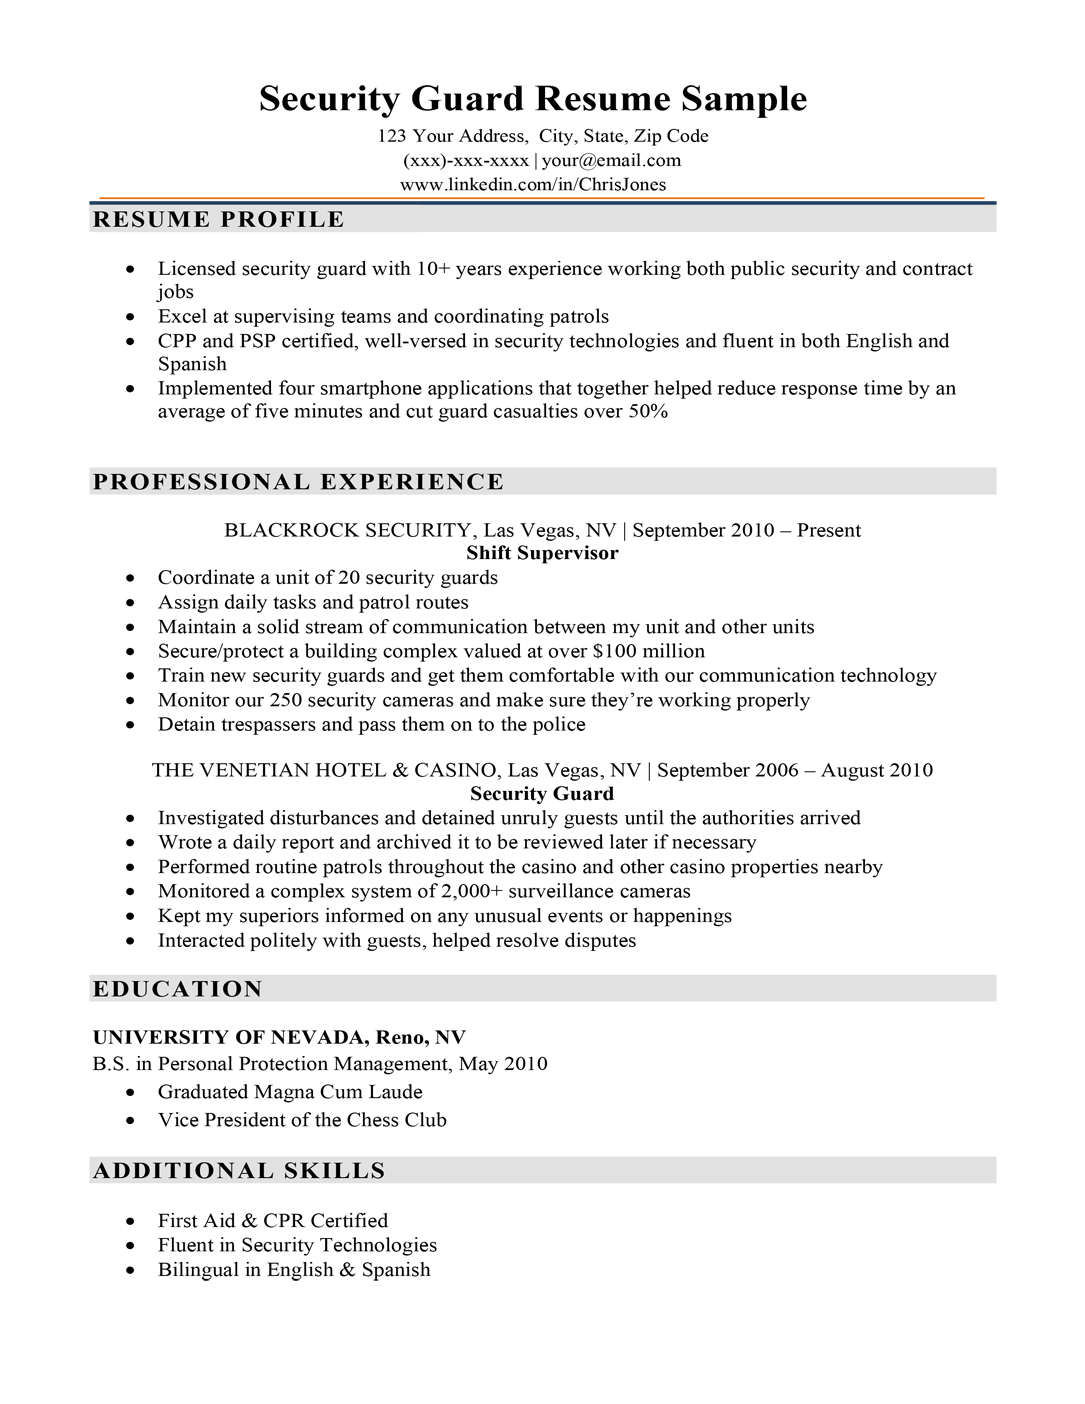 Security guard resume sample